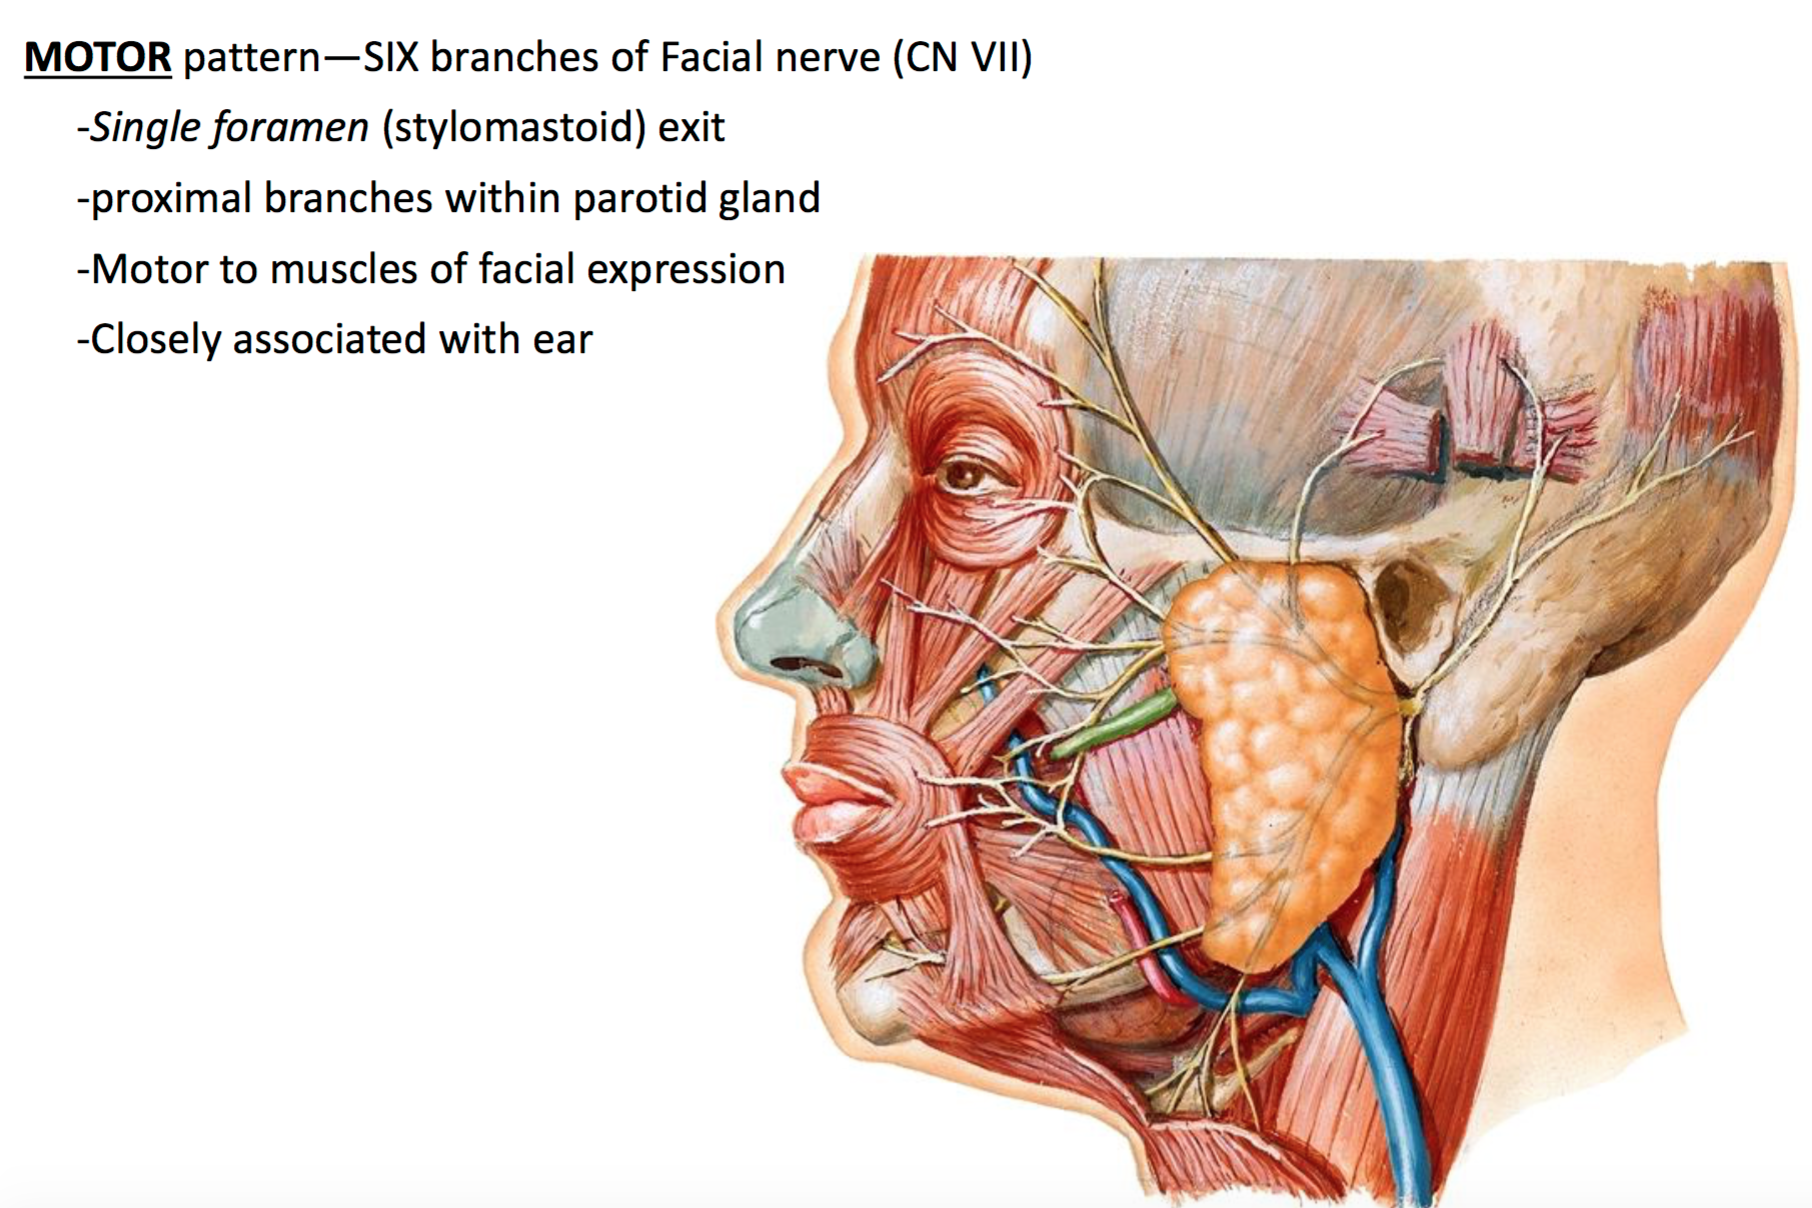 Anatomy G58 Face, Scalp & Parotid Region (Anatomy Unit 7) Flashcards ...